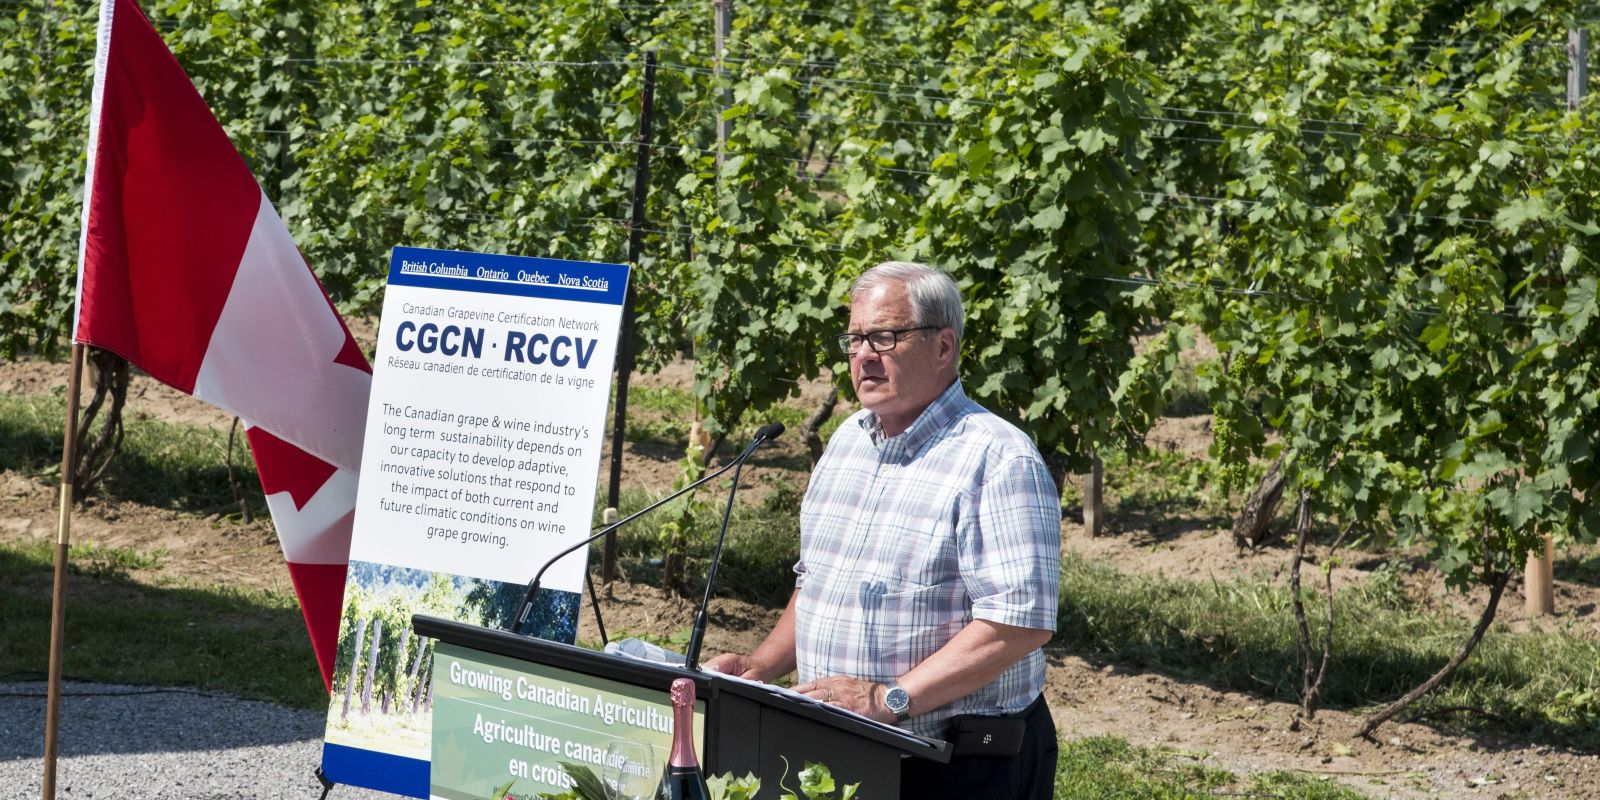 The Canadian Grapevine Certification Network